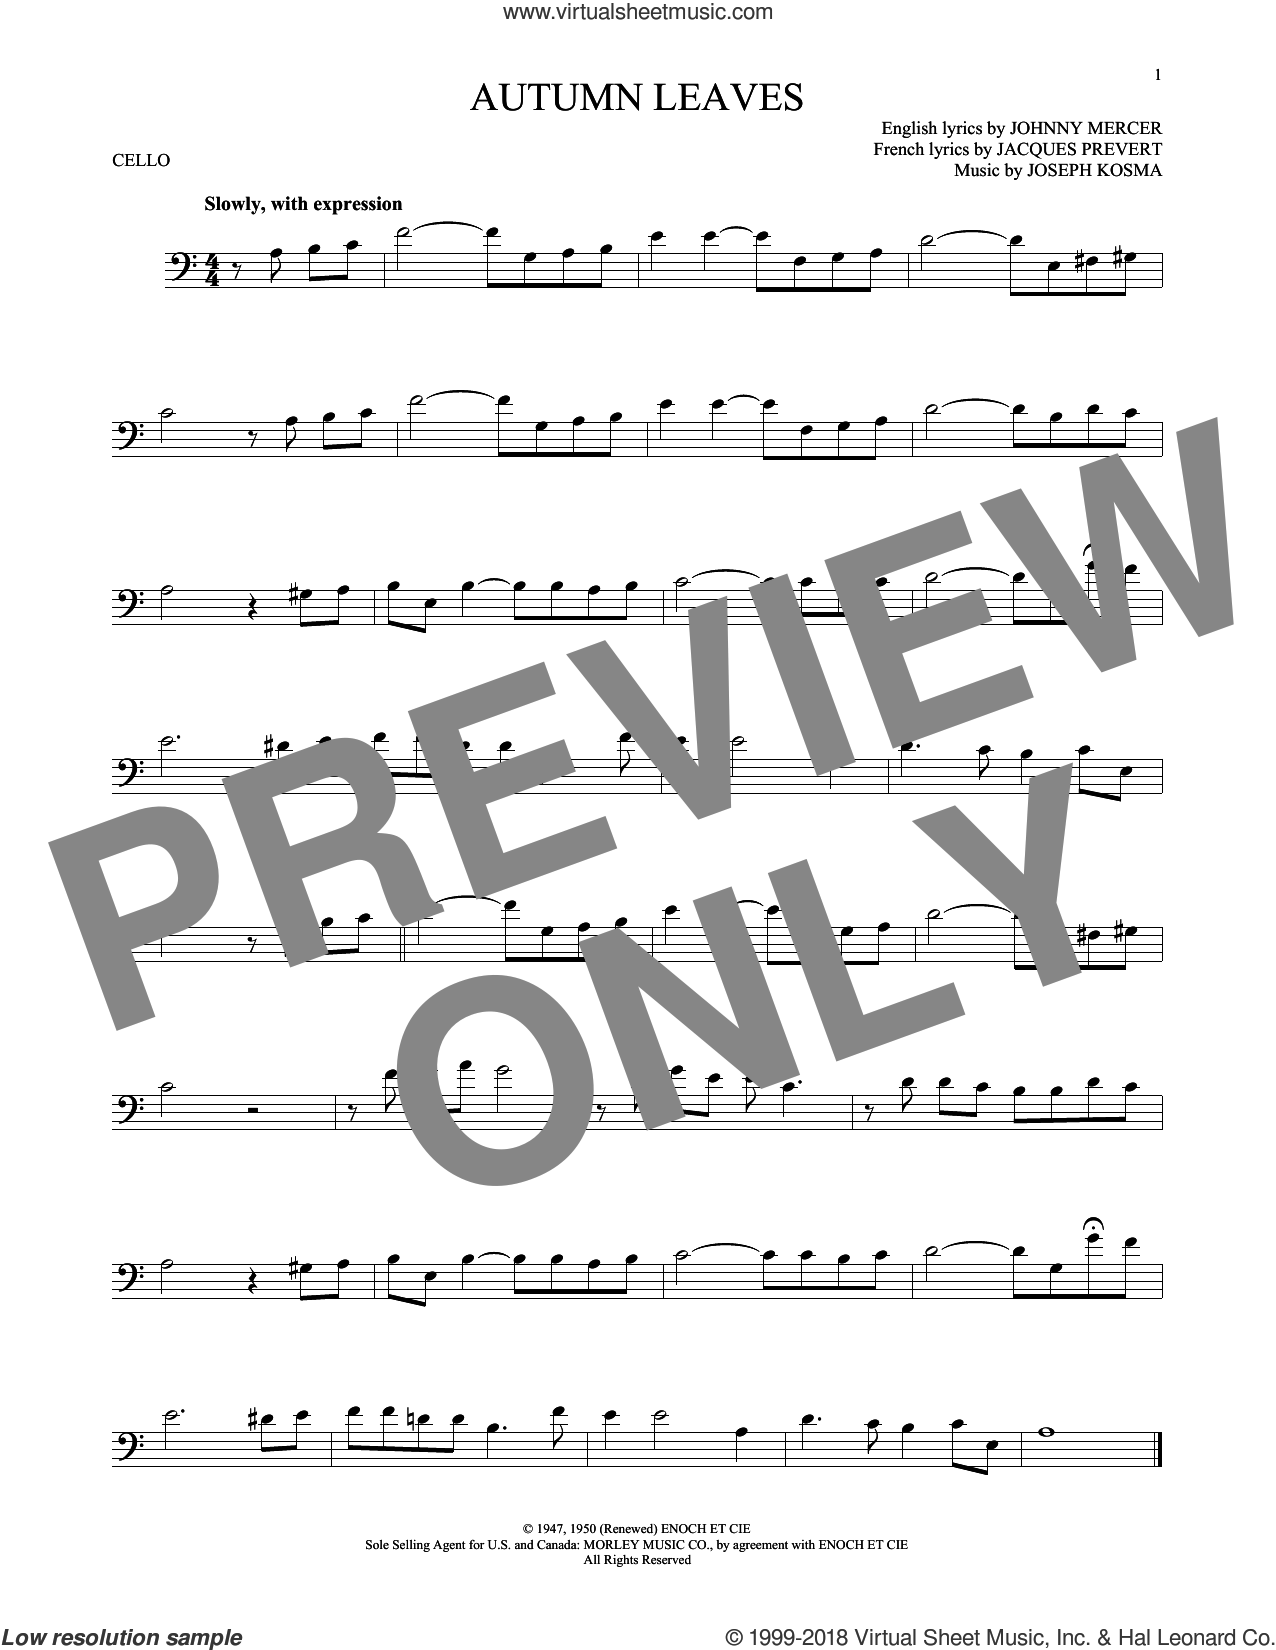 Autumn Leaves sheet music for cello solo by Joseph Kosma, Mitch Miller, Roger Williams, Steve Allen & George Cates, Jacques Prevert and Johnny Mercer, intermediate skill level